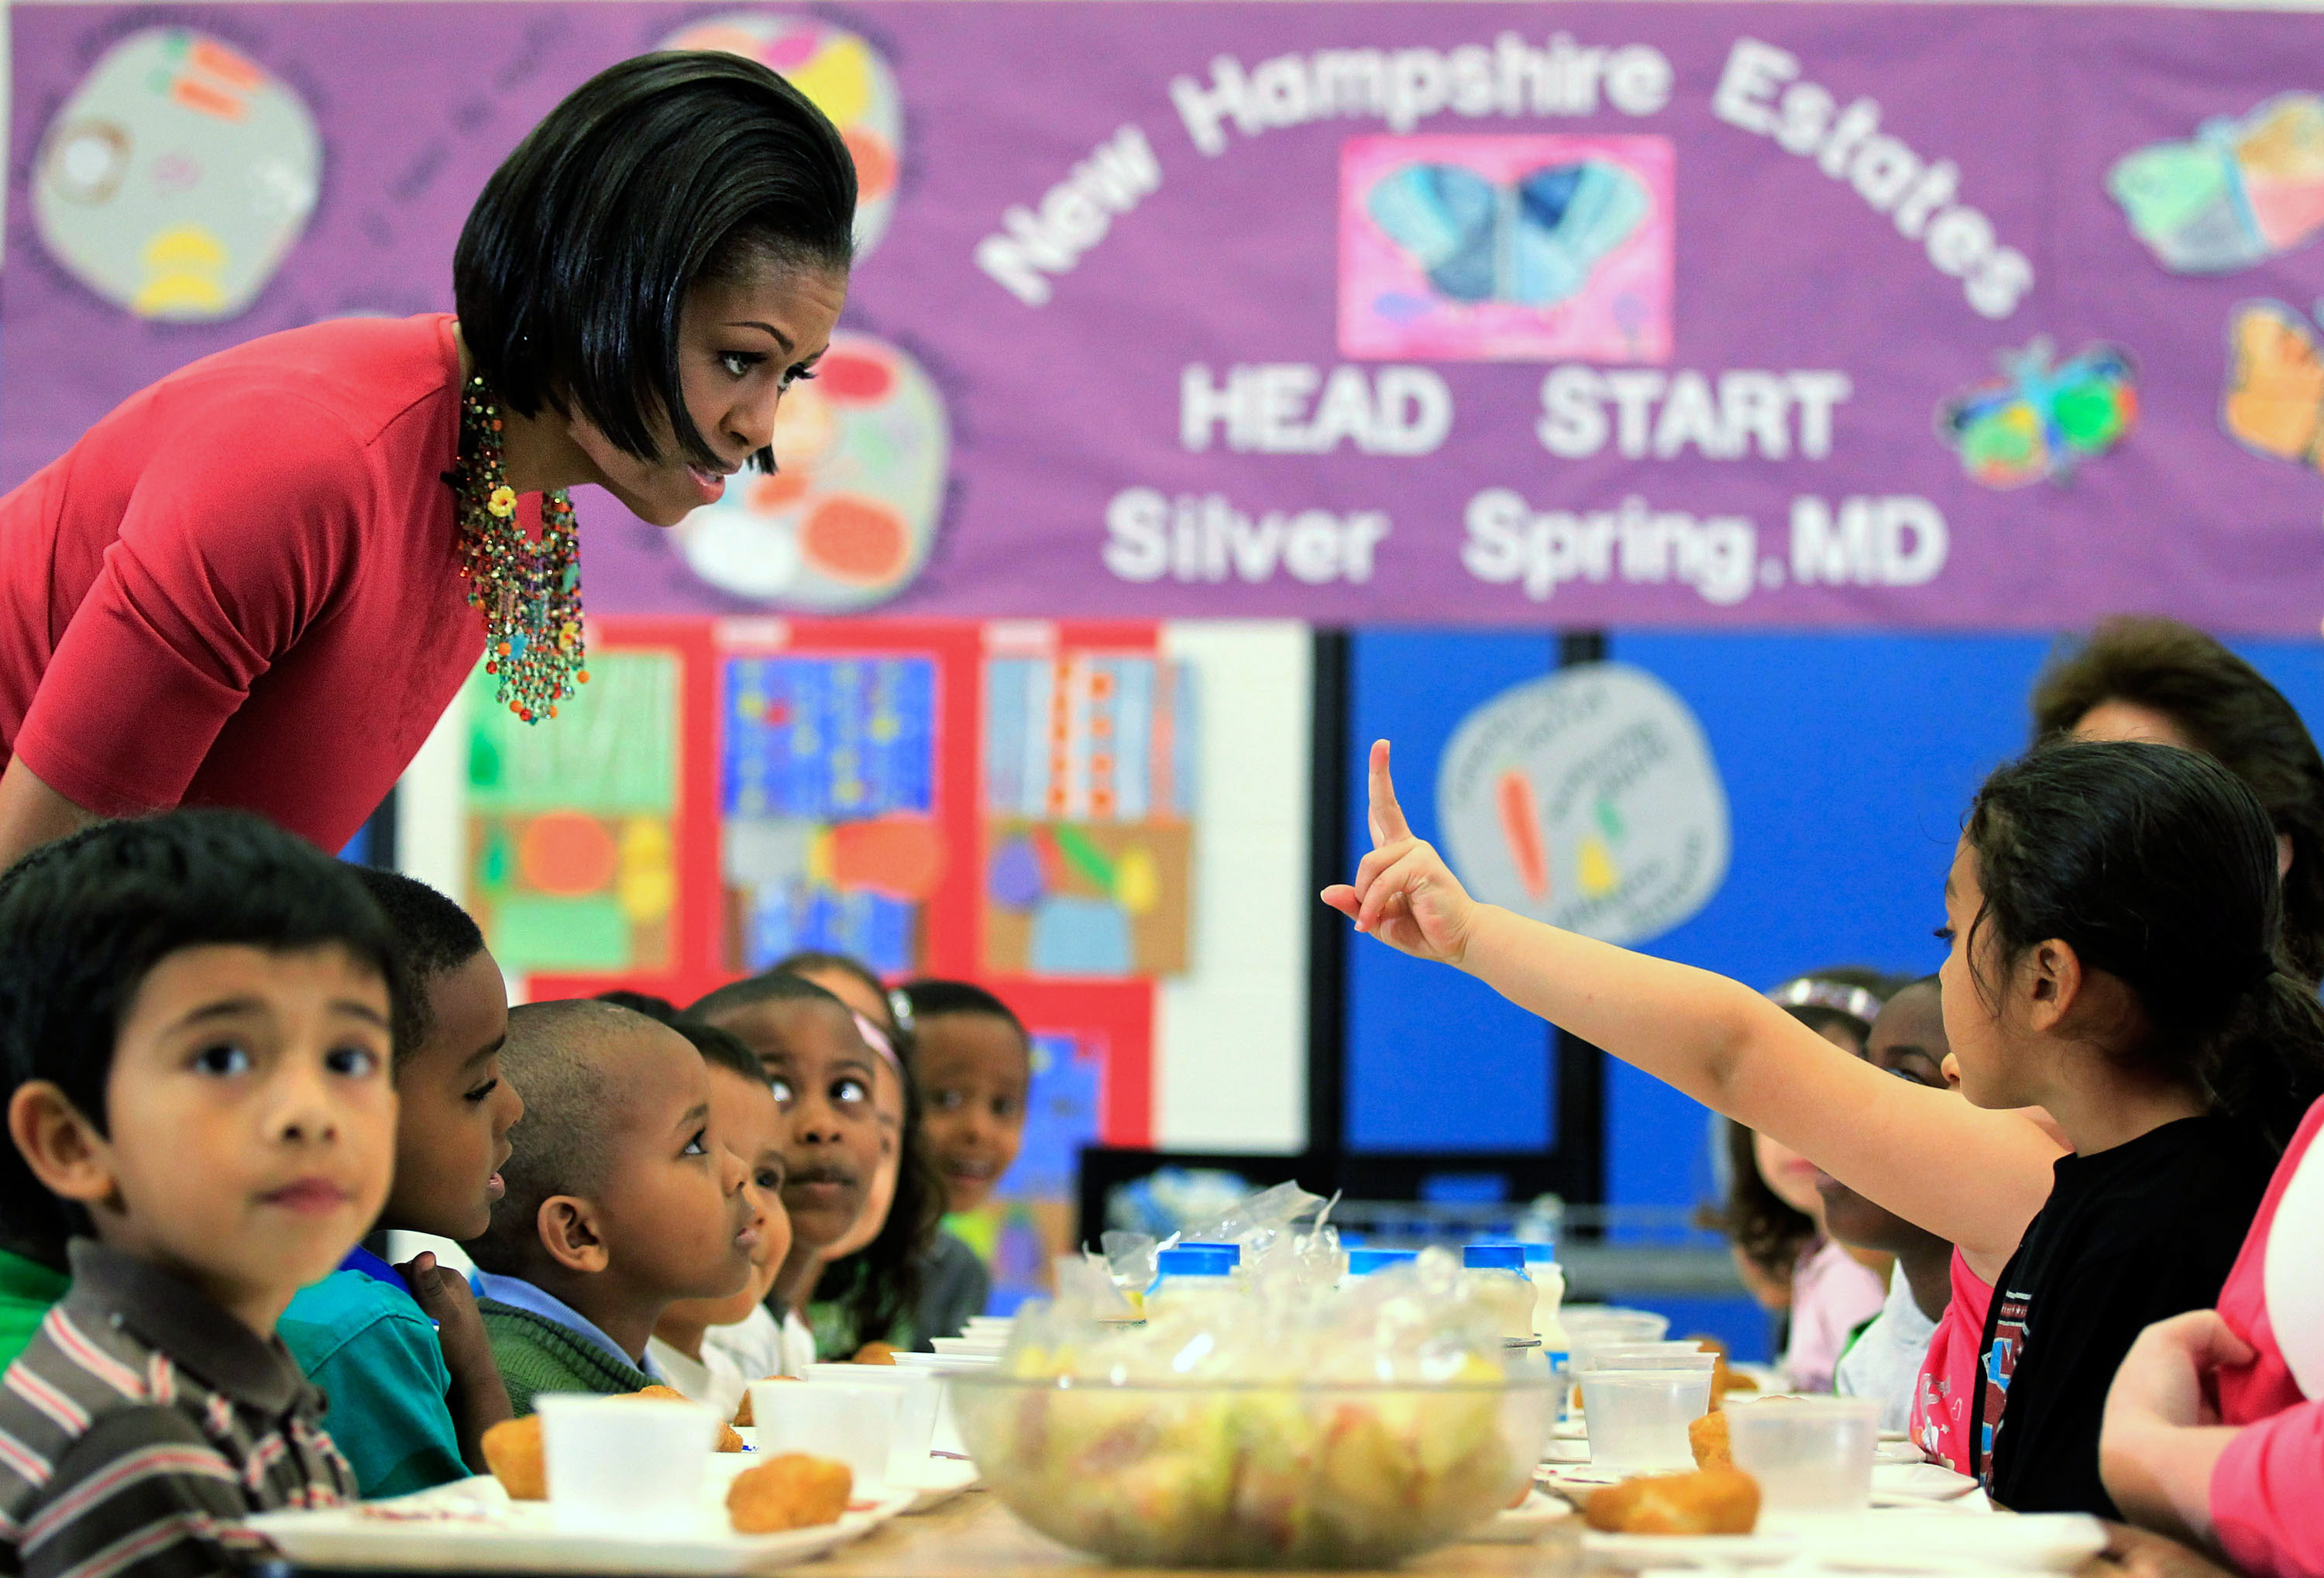 The Trump administration wants to weaken Obama's healthy school lunch rules. Again.